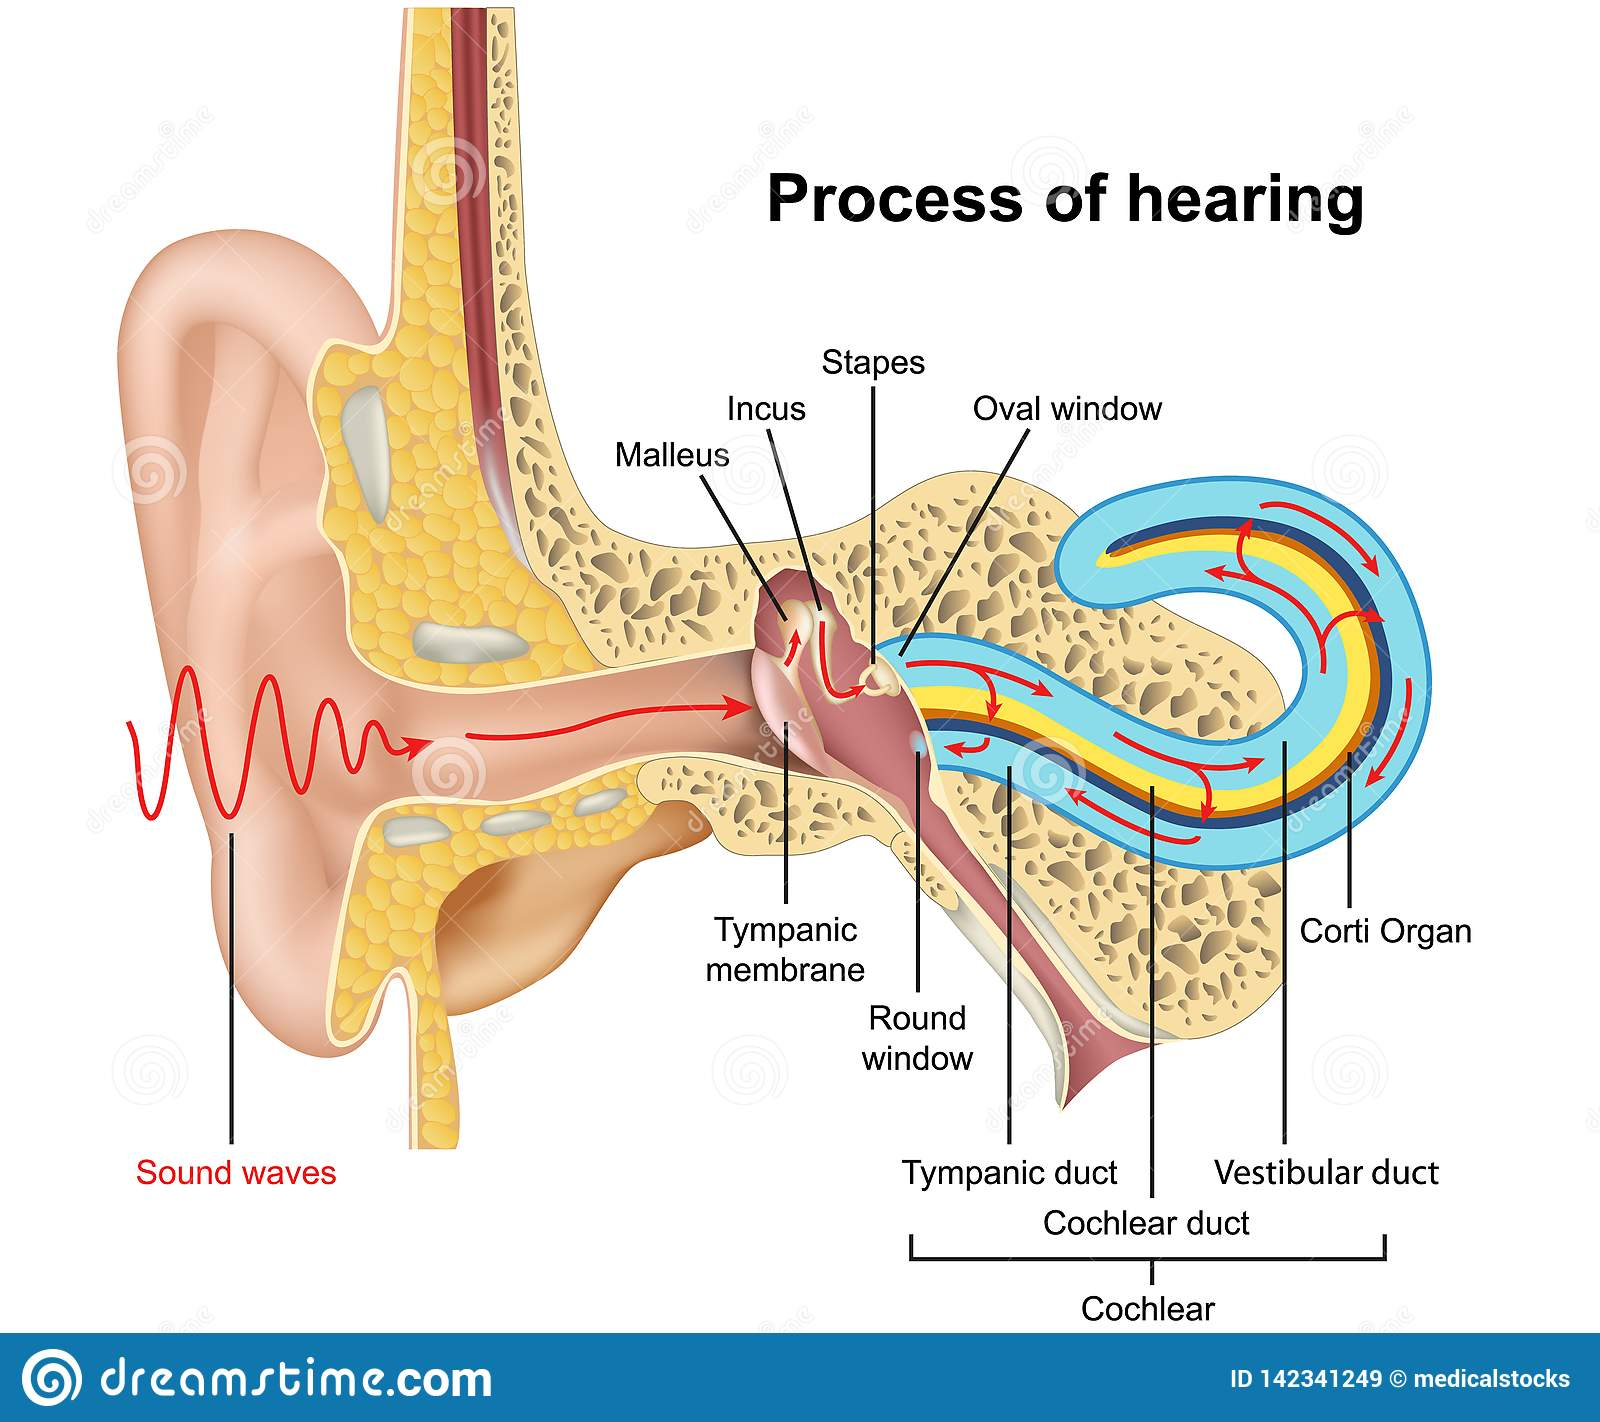 hearing process, ear anatomy 3d illustration on white background eps 10